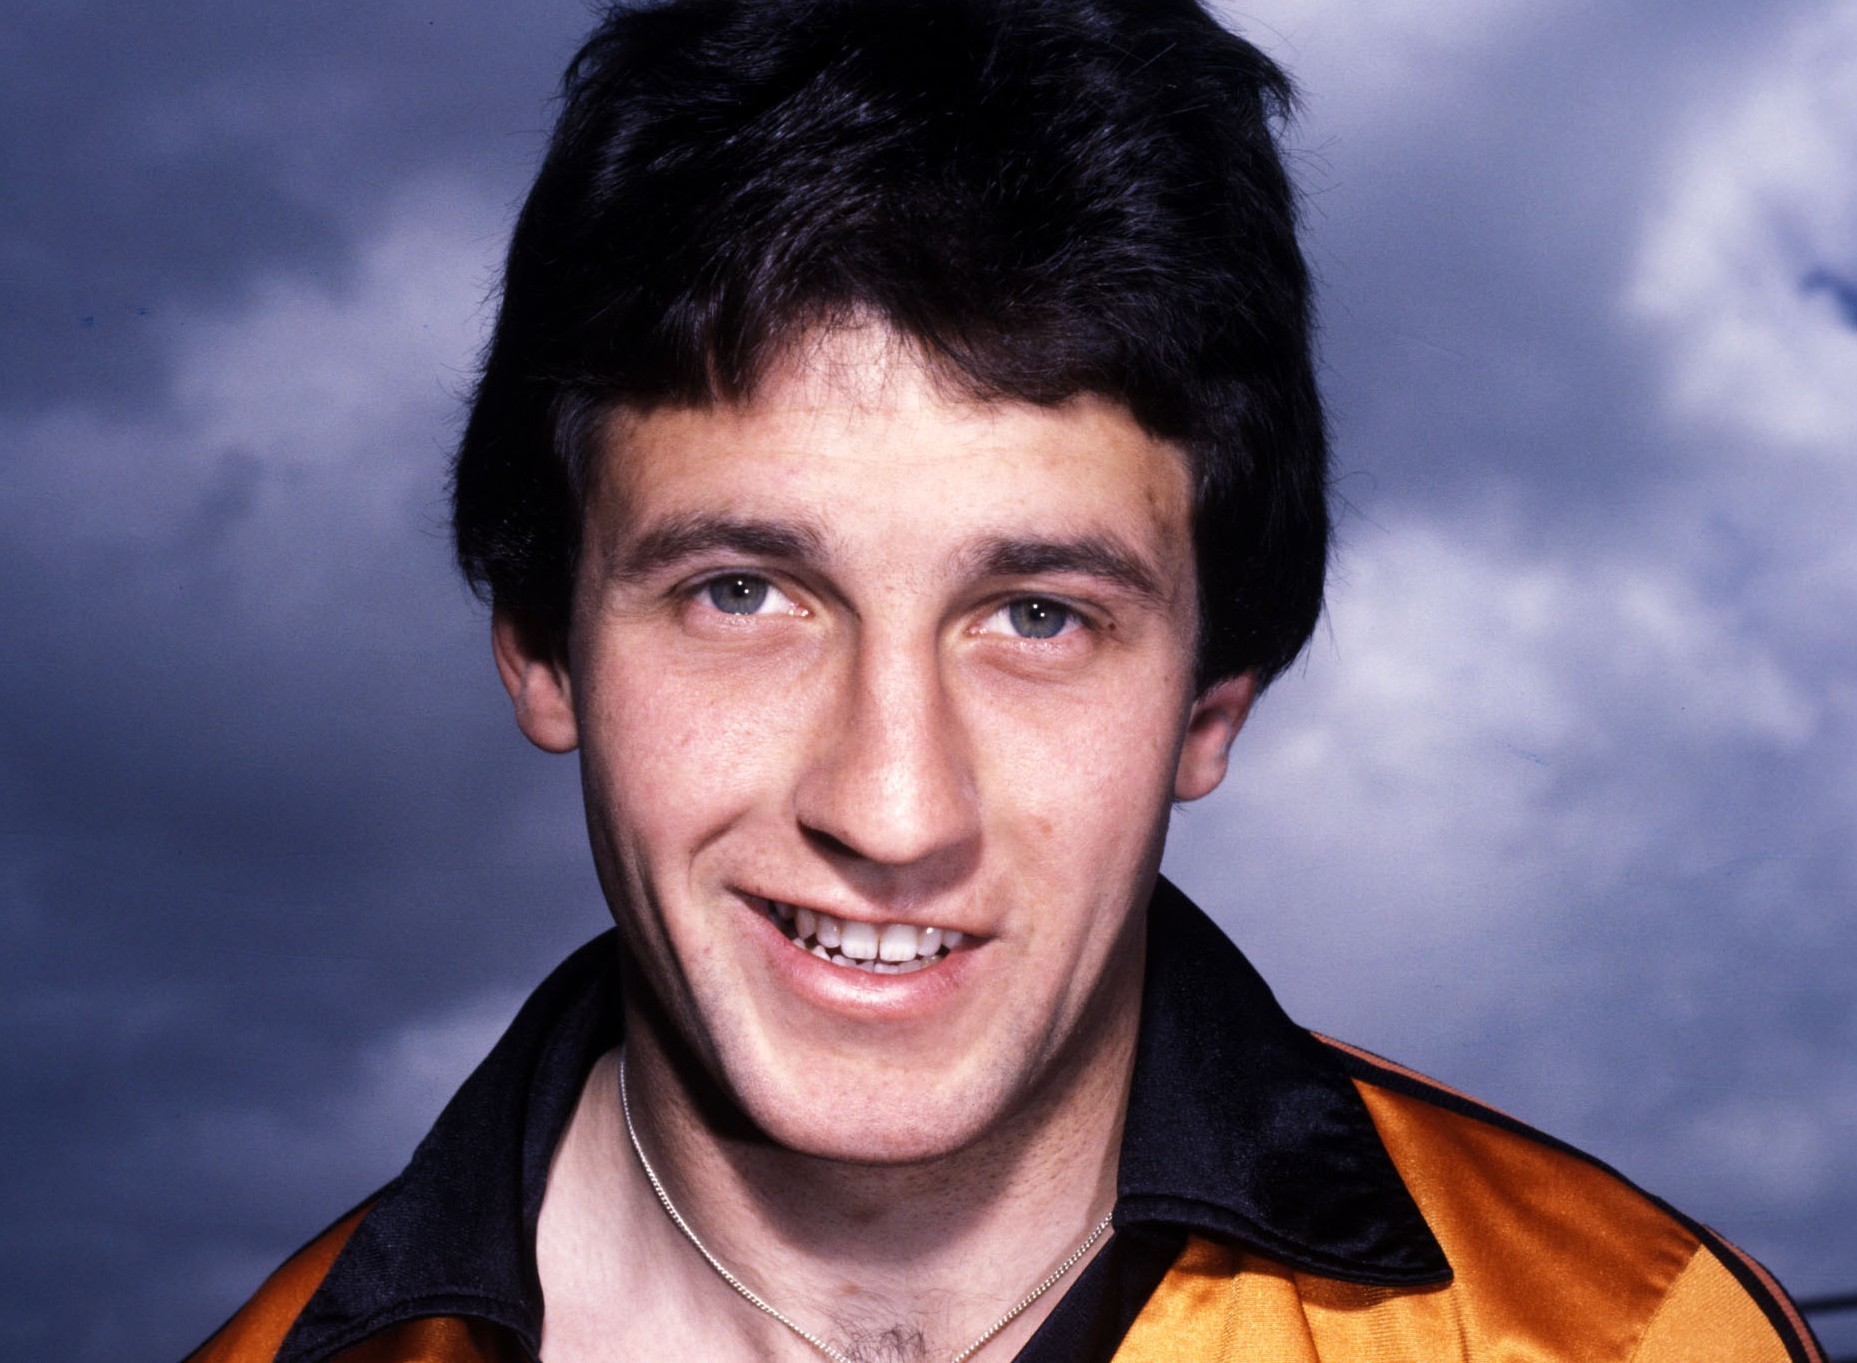 Ralph Milne, pictured in his Dundee United kit during the 1980/81 season.